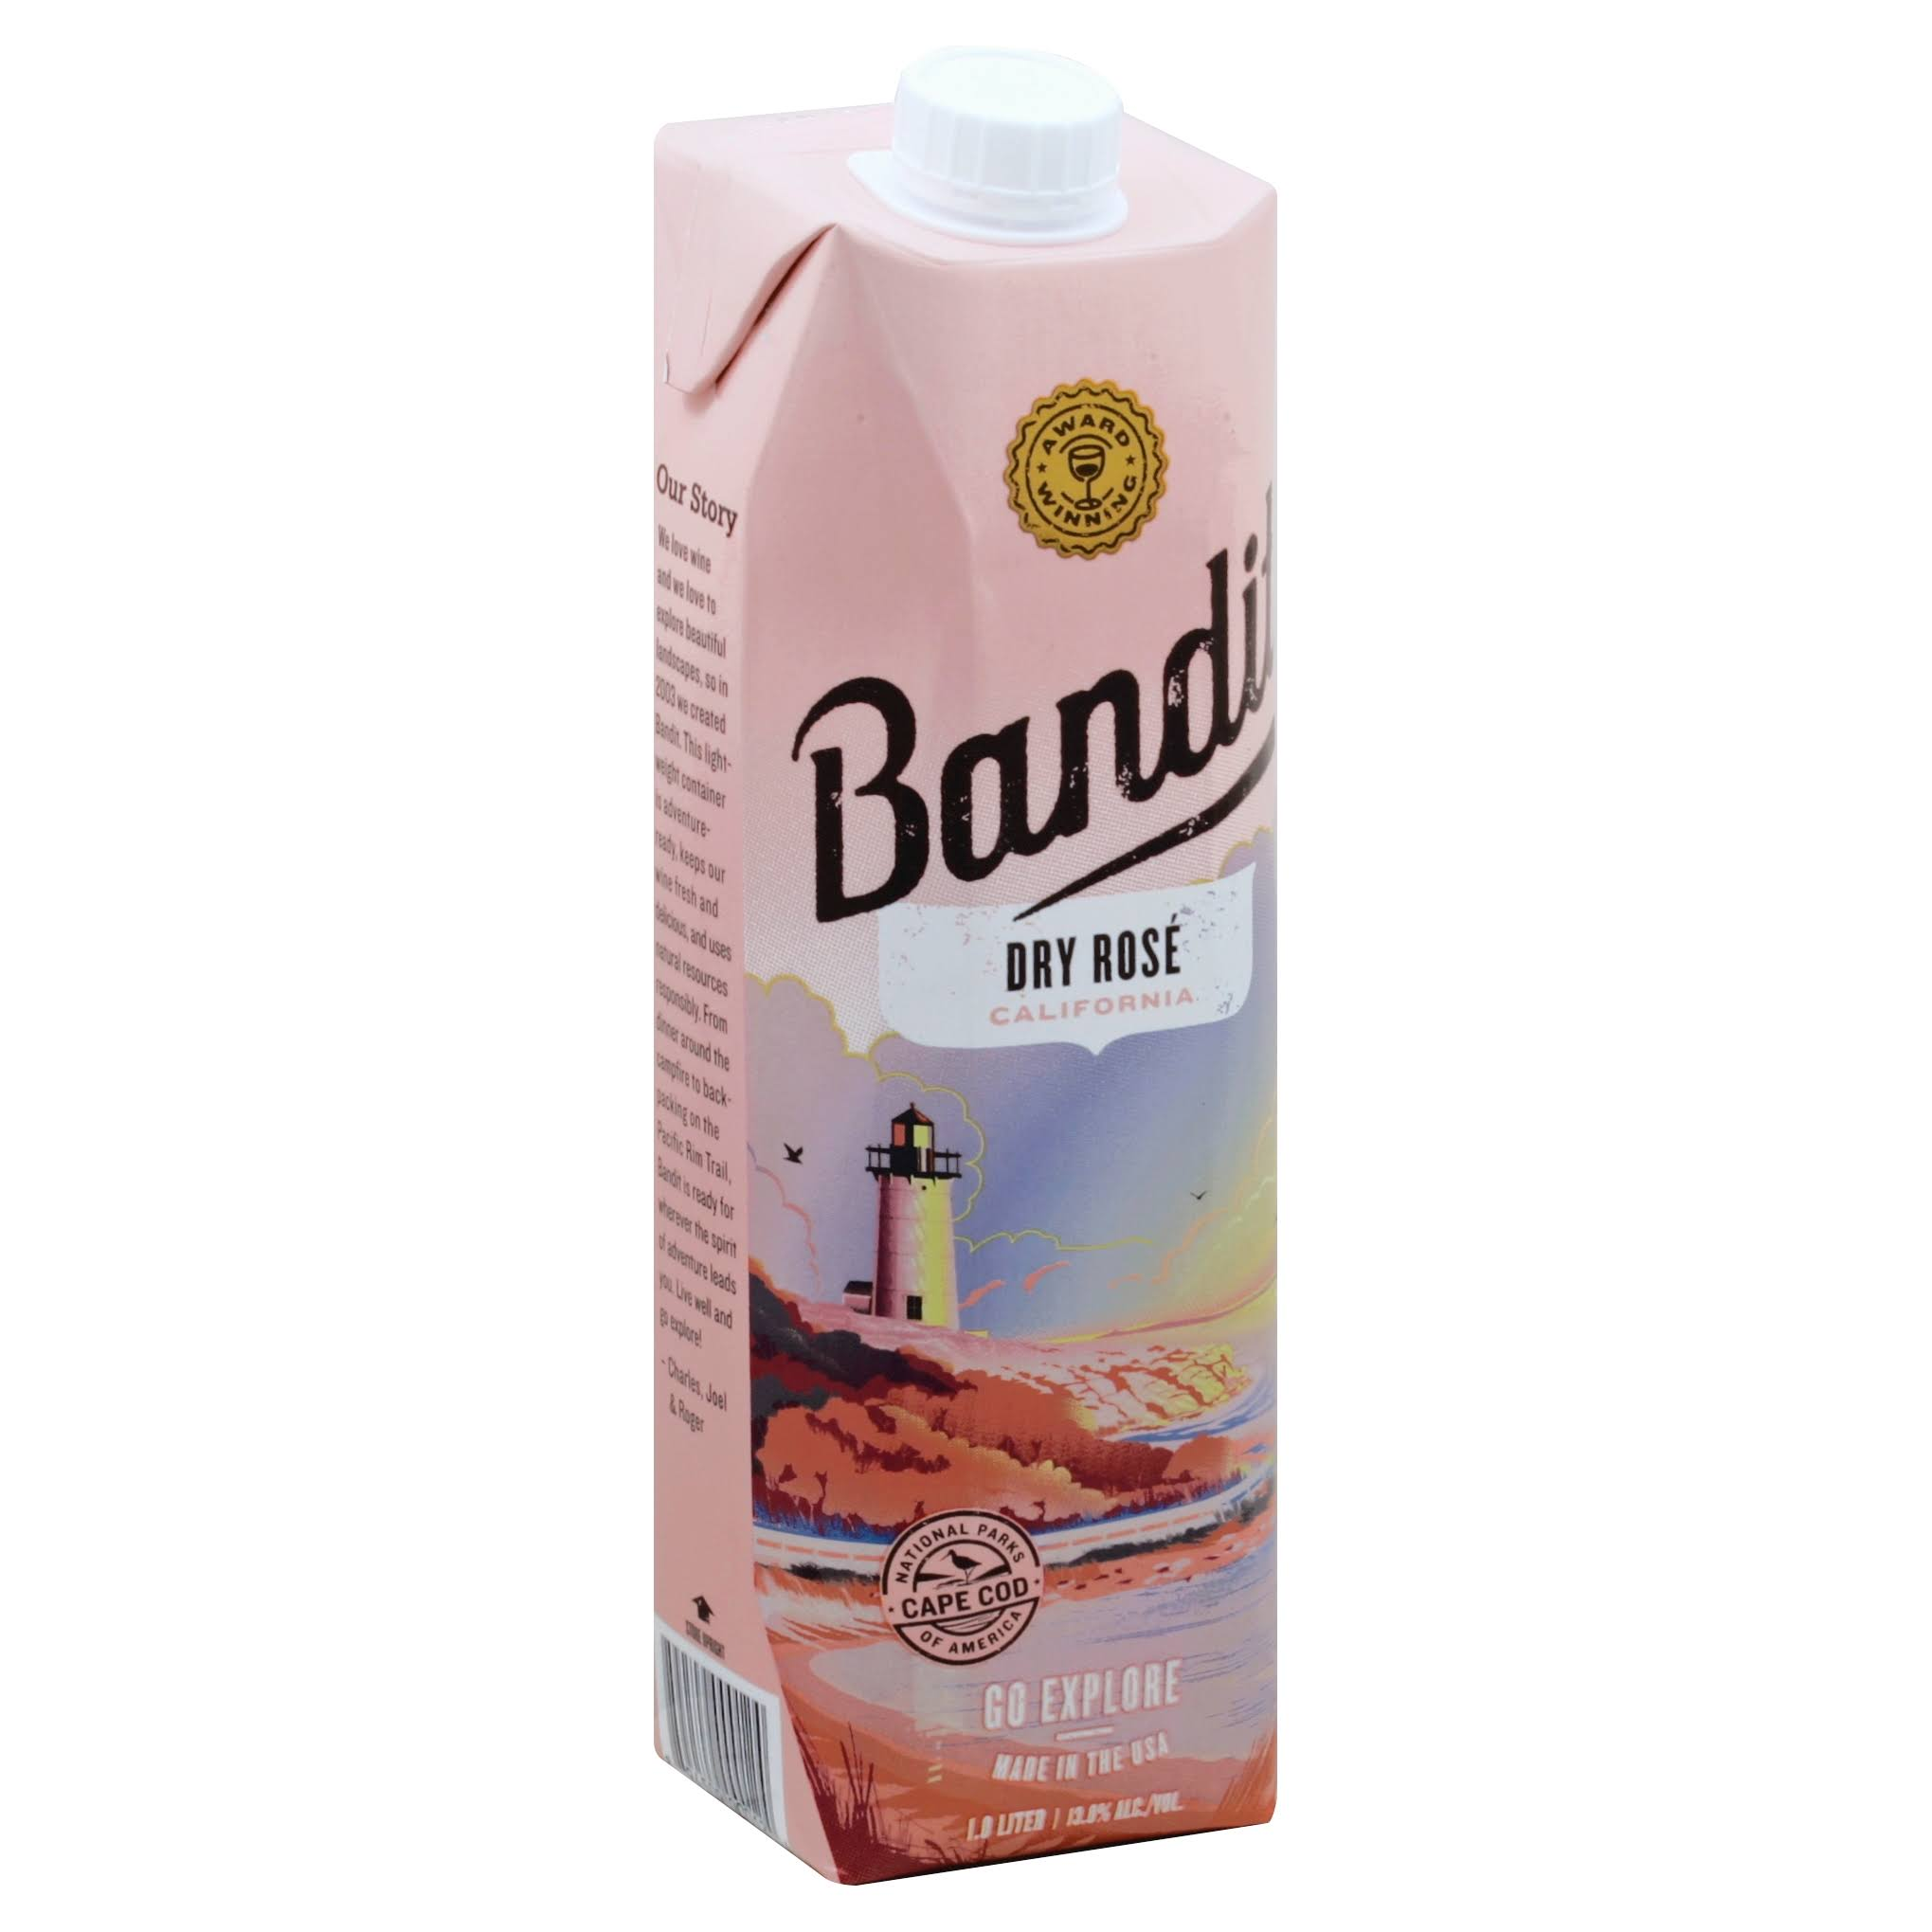 Bandit Rose Wine, Dry, California - 1 liter